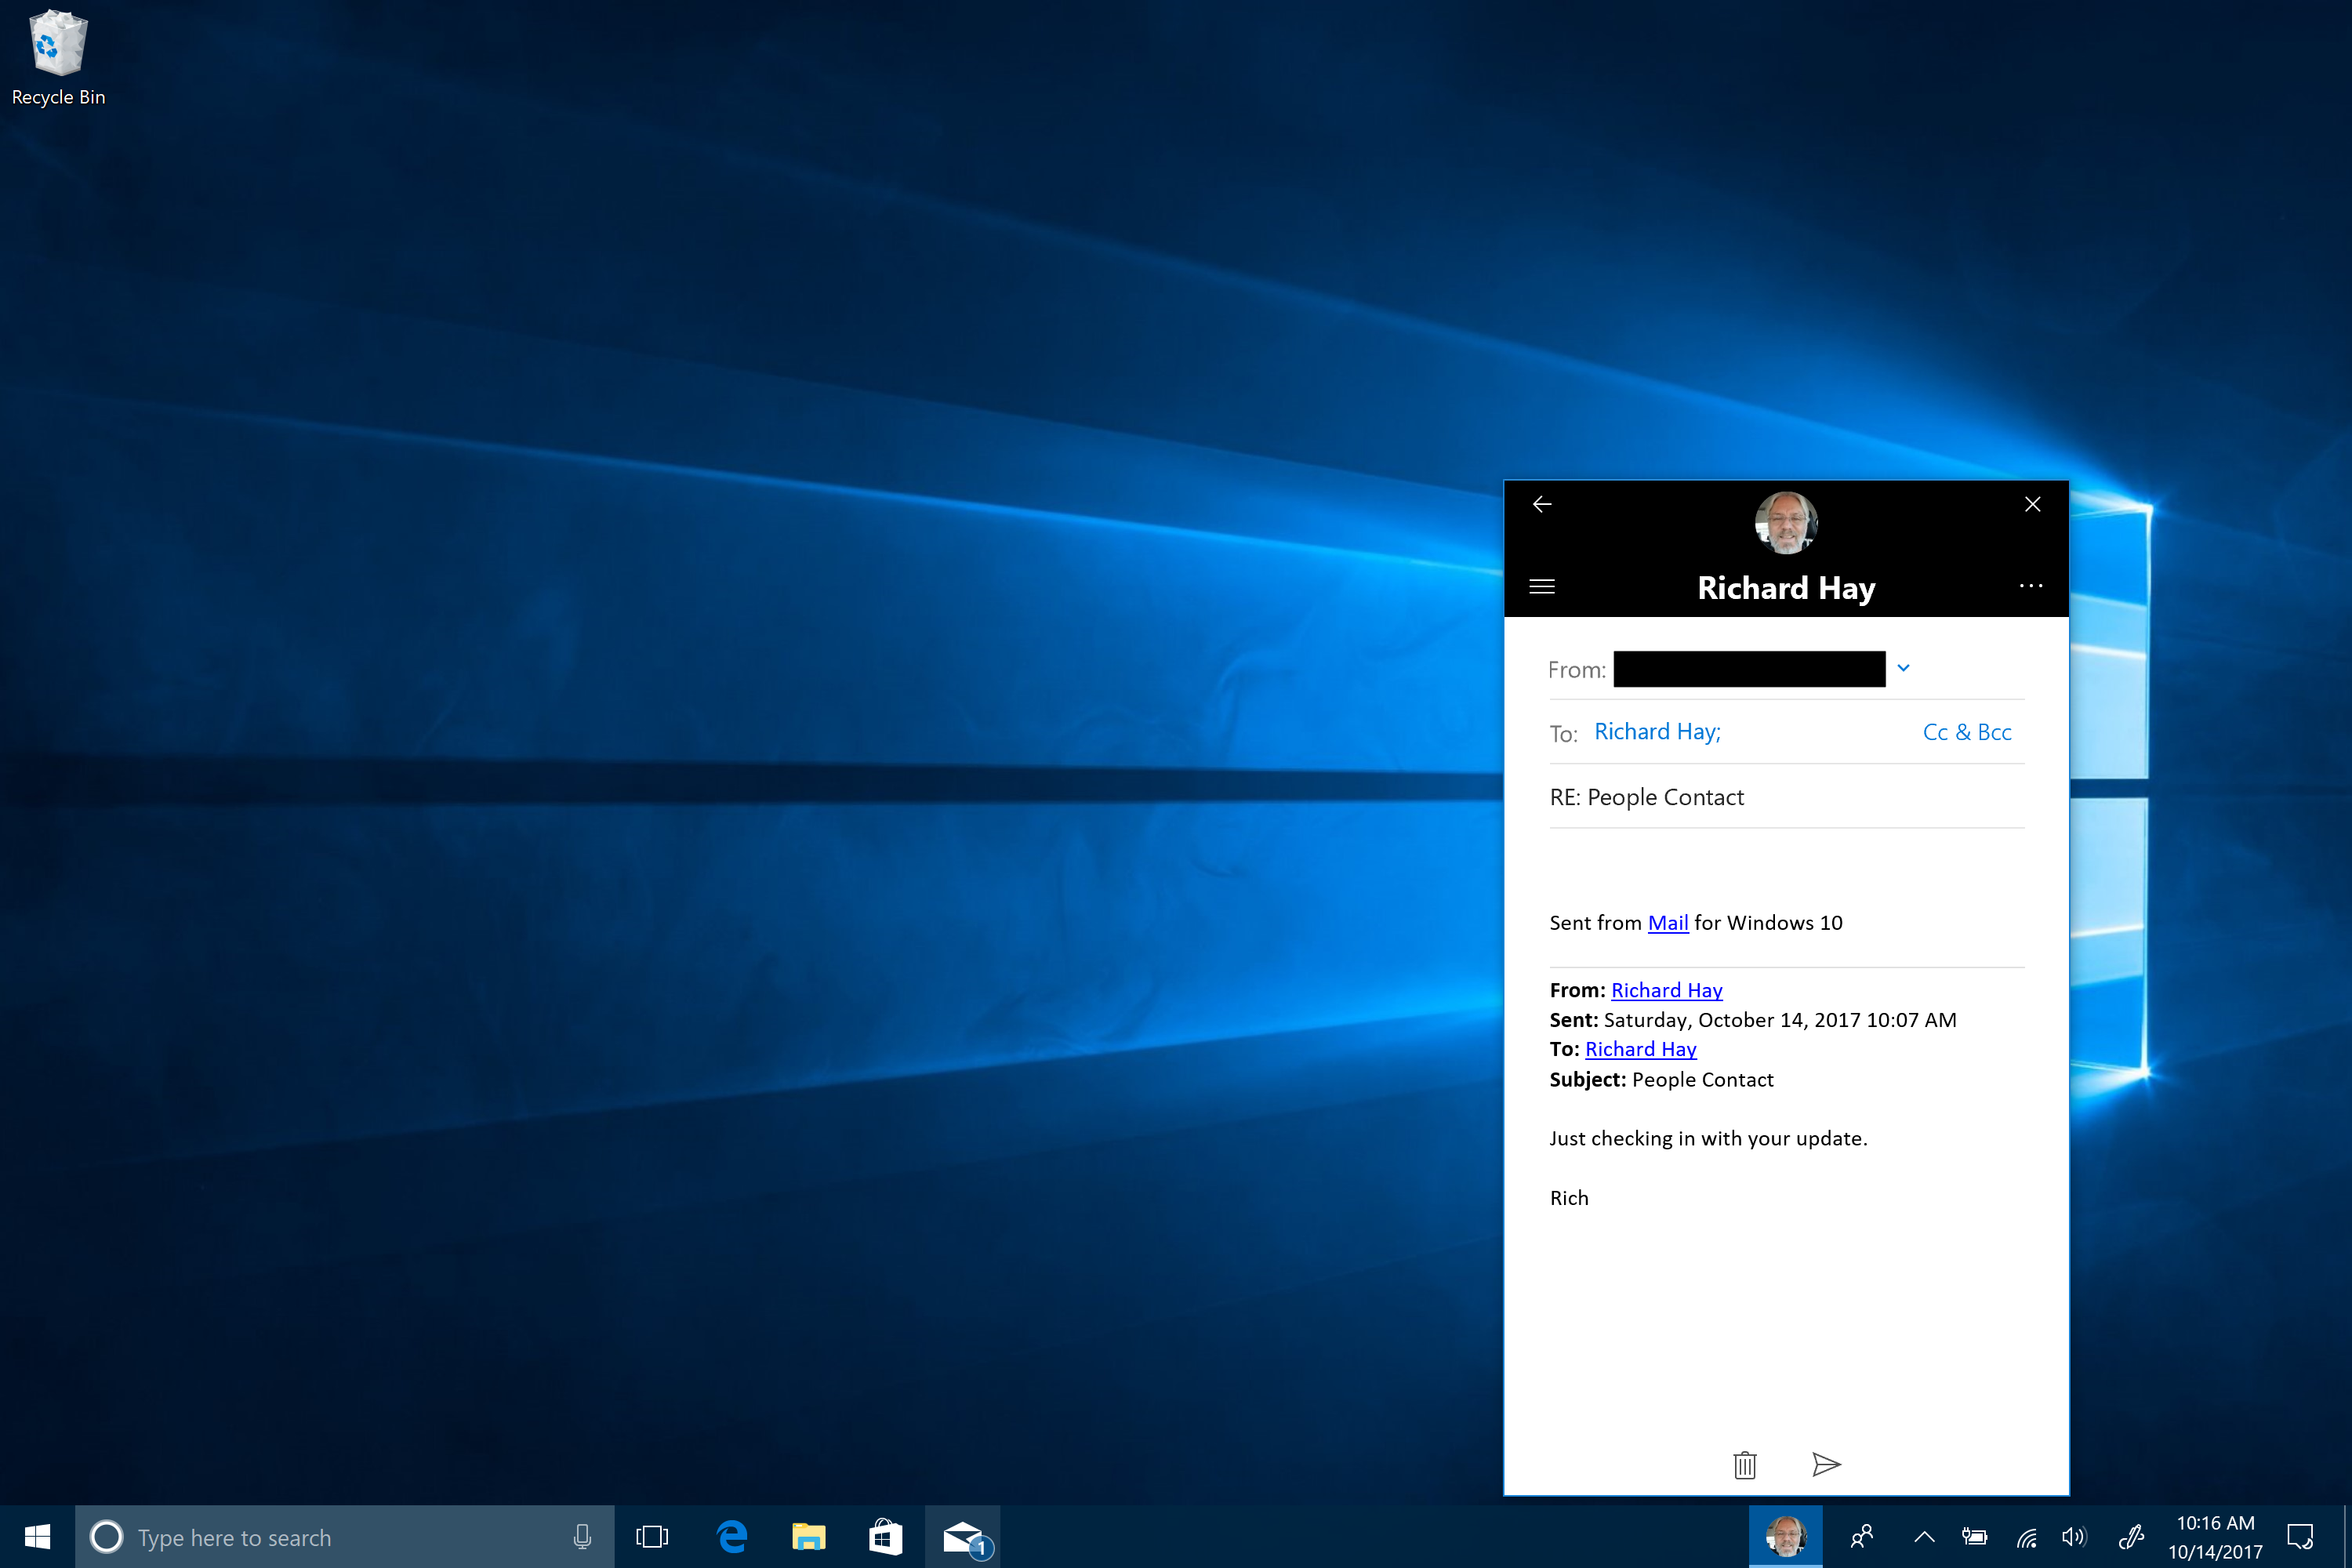 Replying to an e-mail from the taskbar